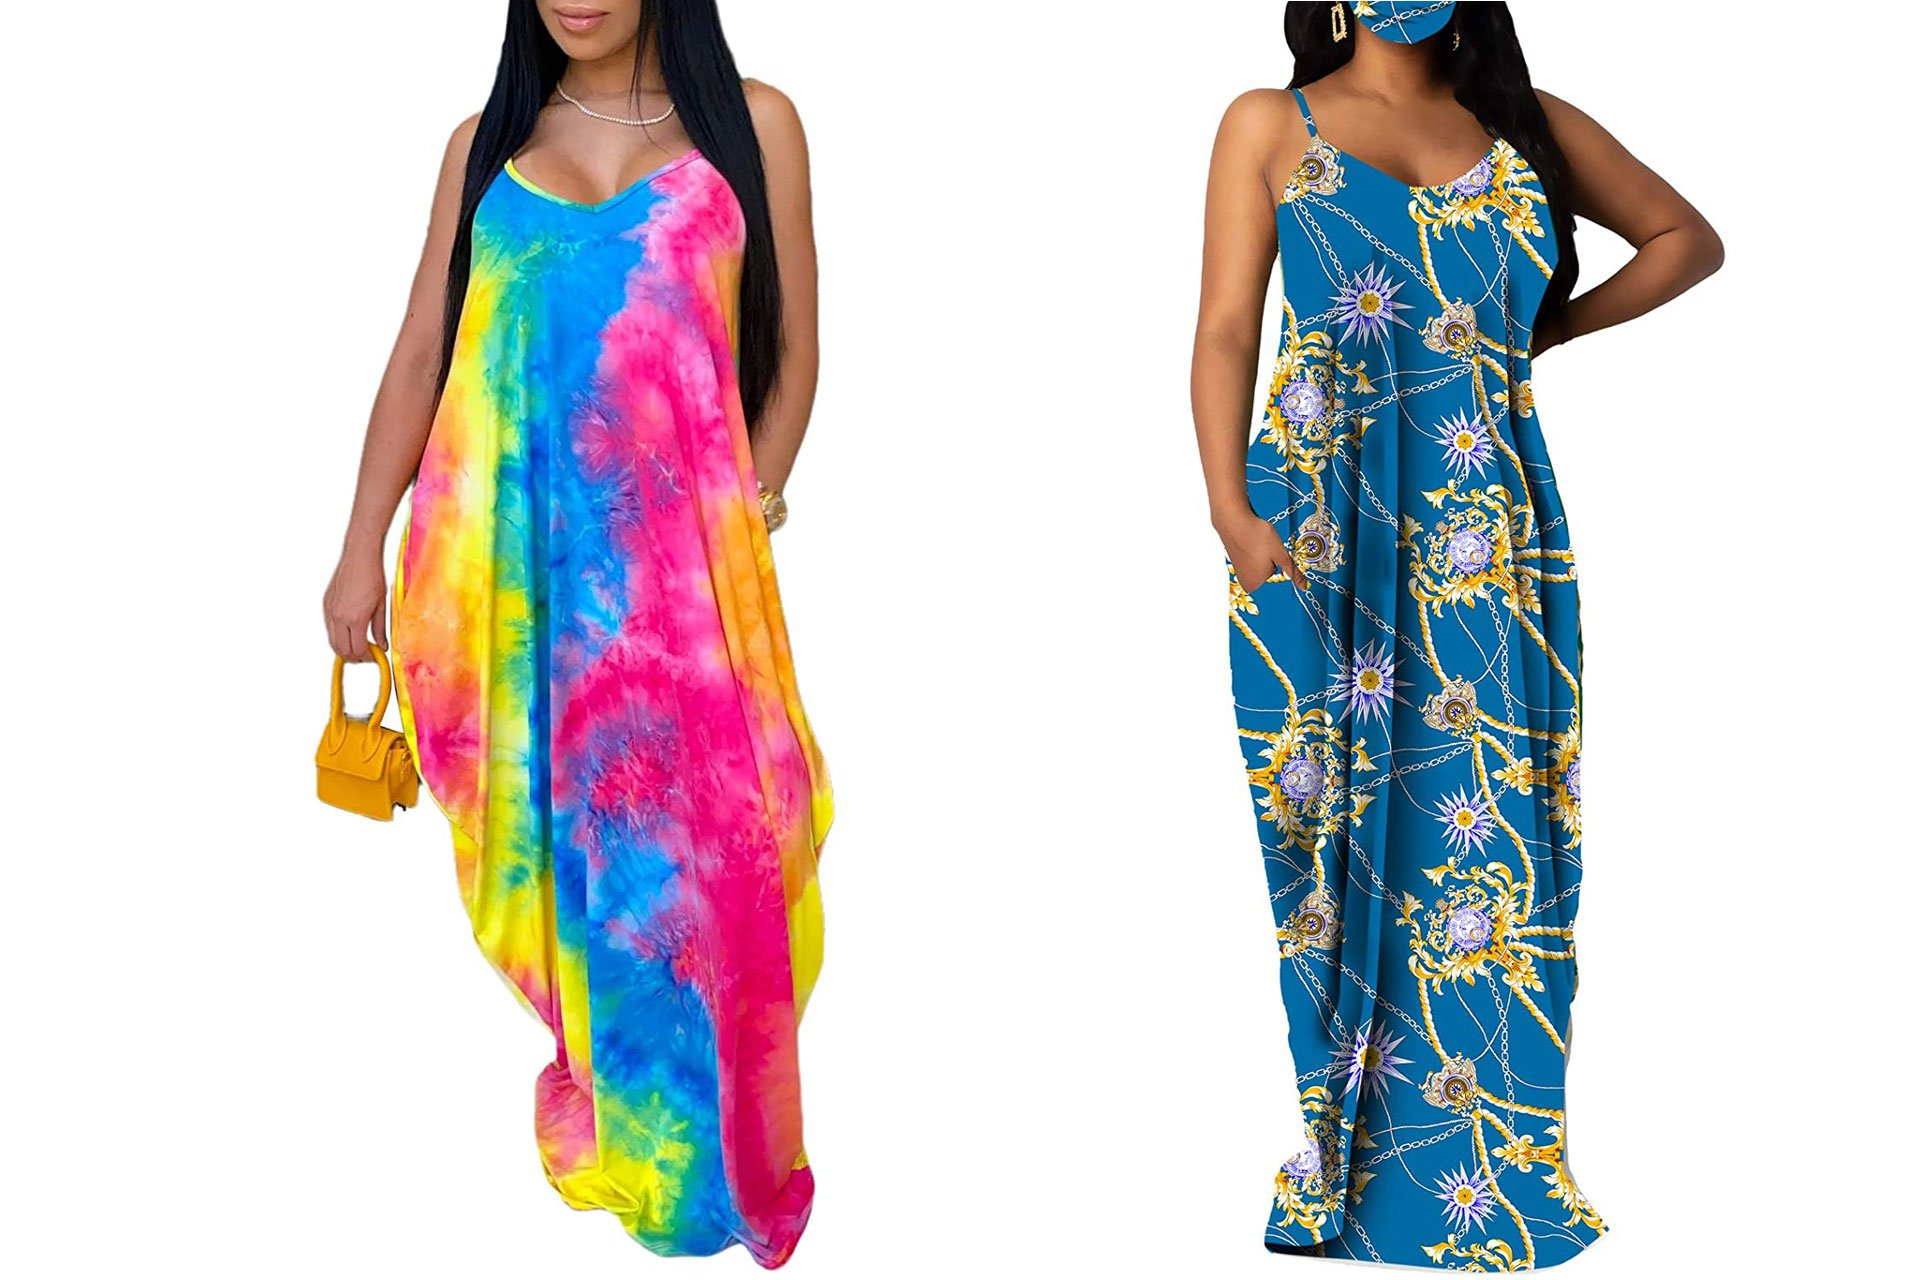 Women's Casual Summer Maxi Dresses Sleeveless Bohemian Floral Print Loose Plus Size Sundresses with Pockets